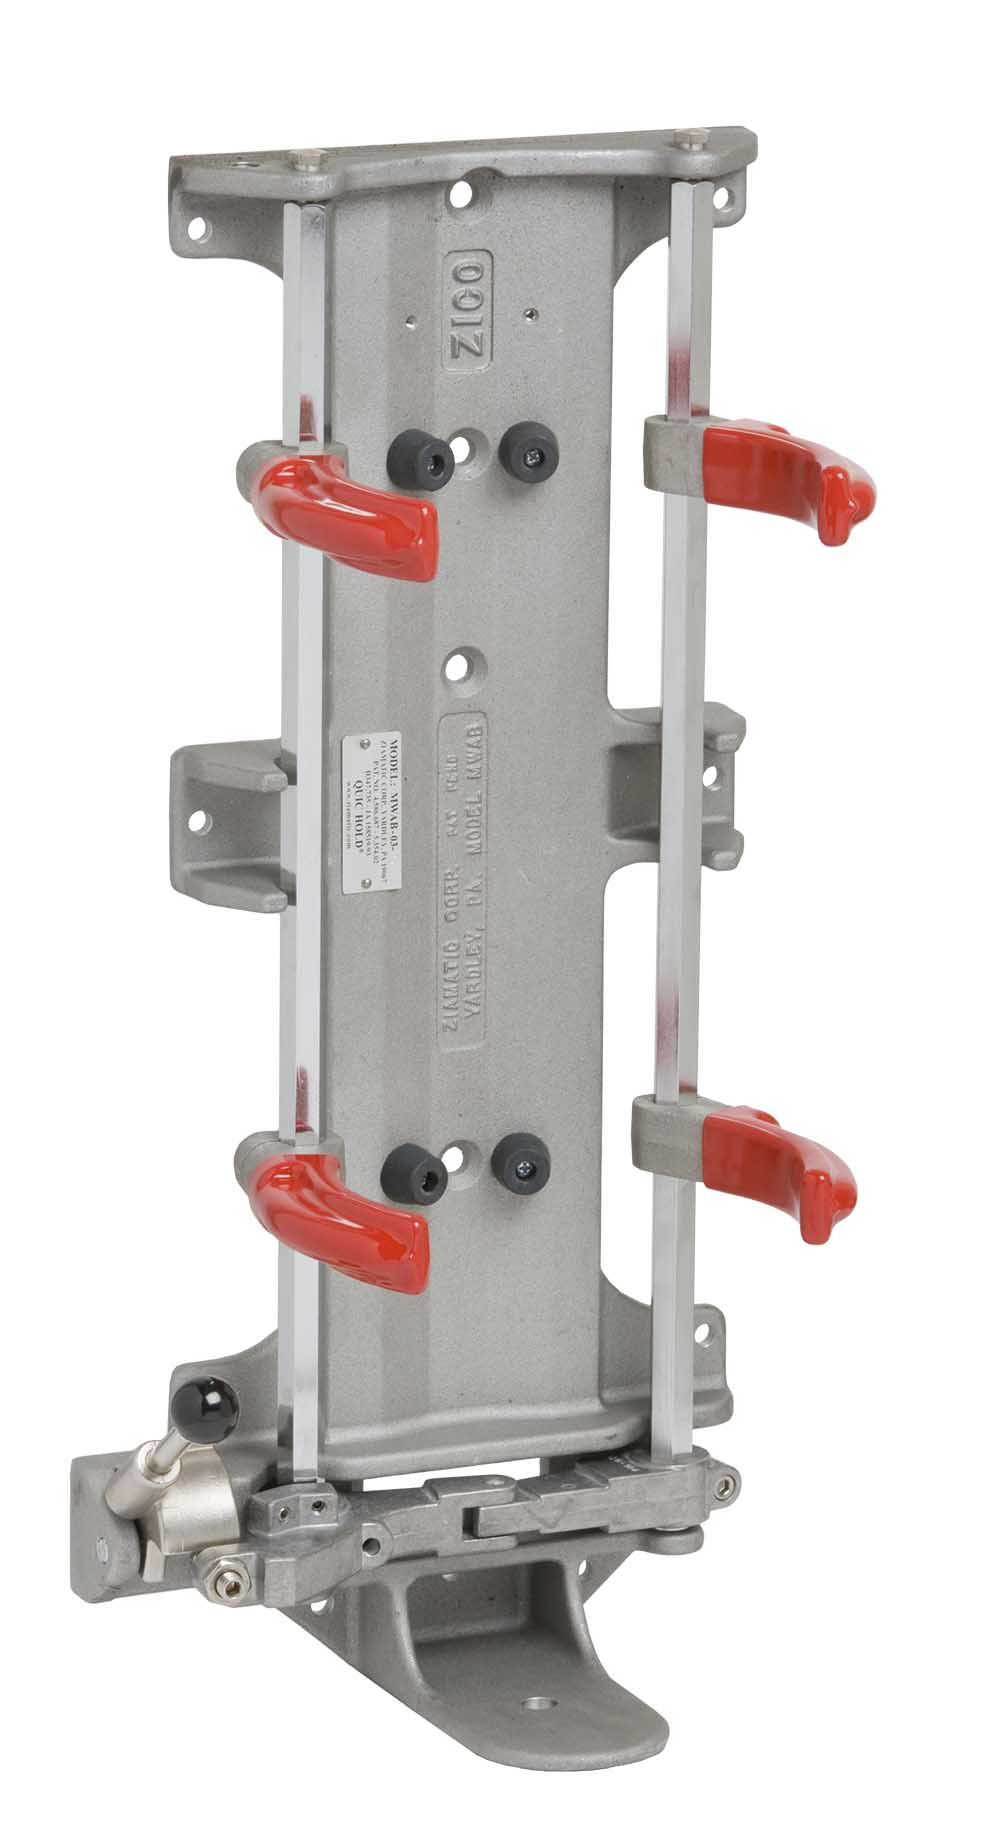 QUIC-HOLD Mechanical Bracket – Standard Footplate